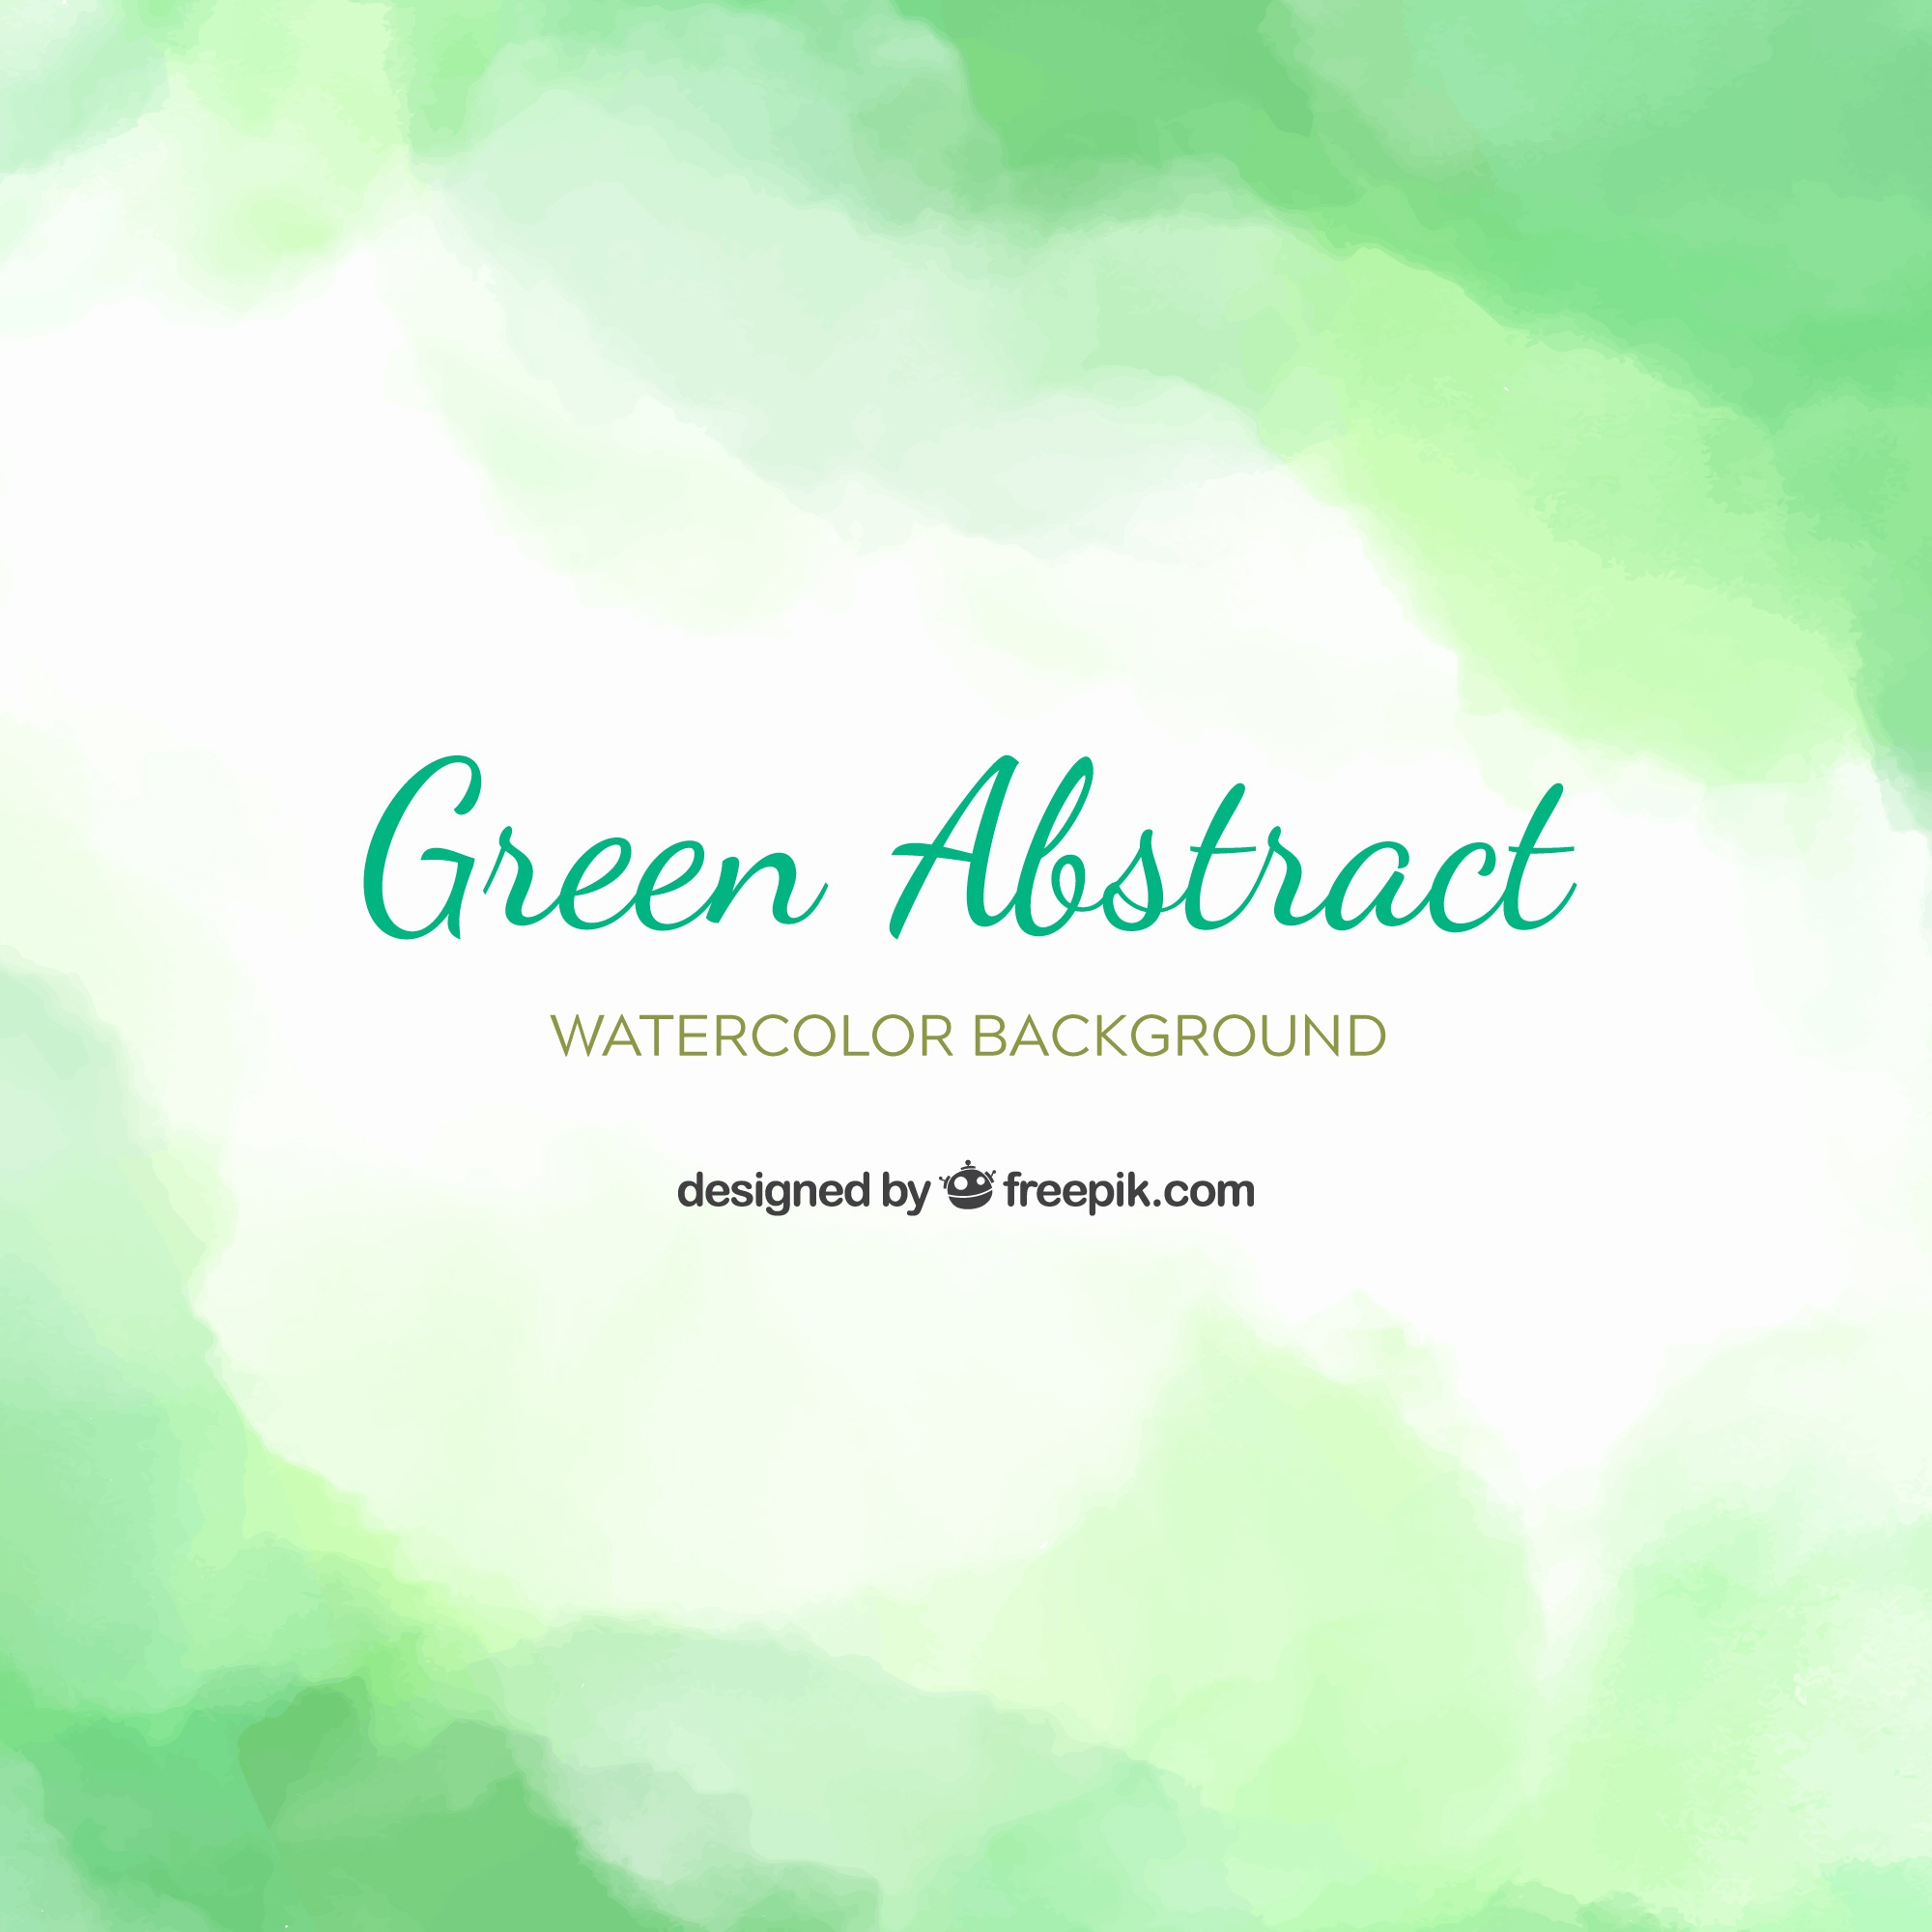 Green abstract background in watercolor style